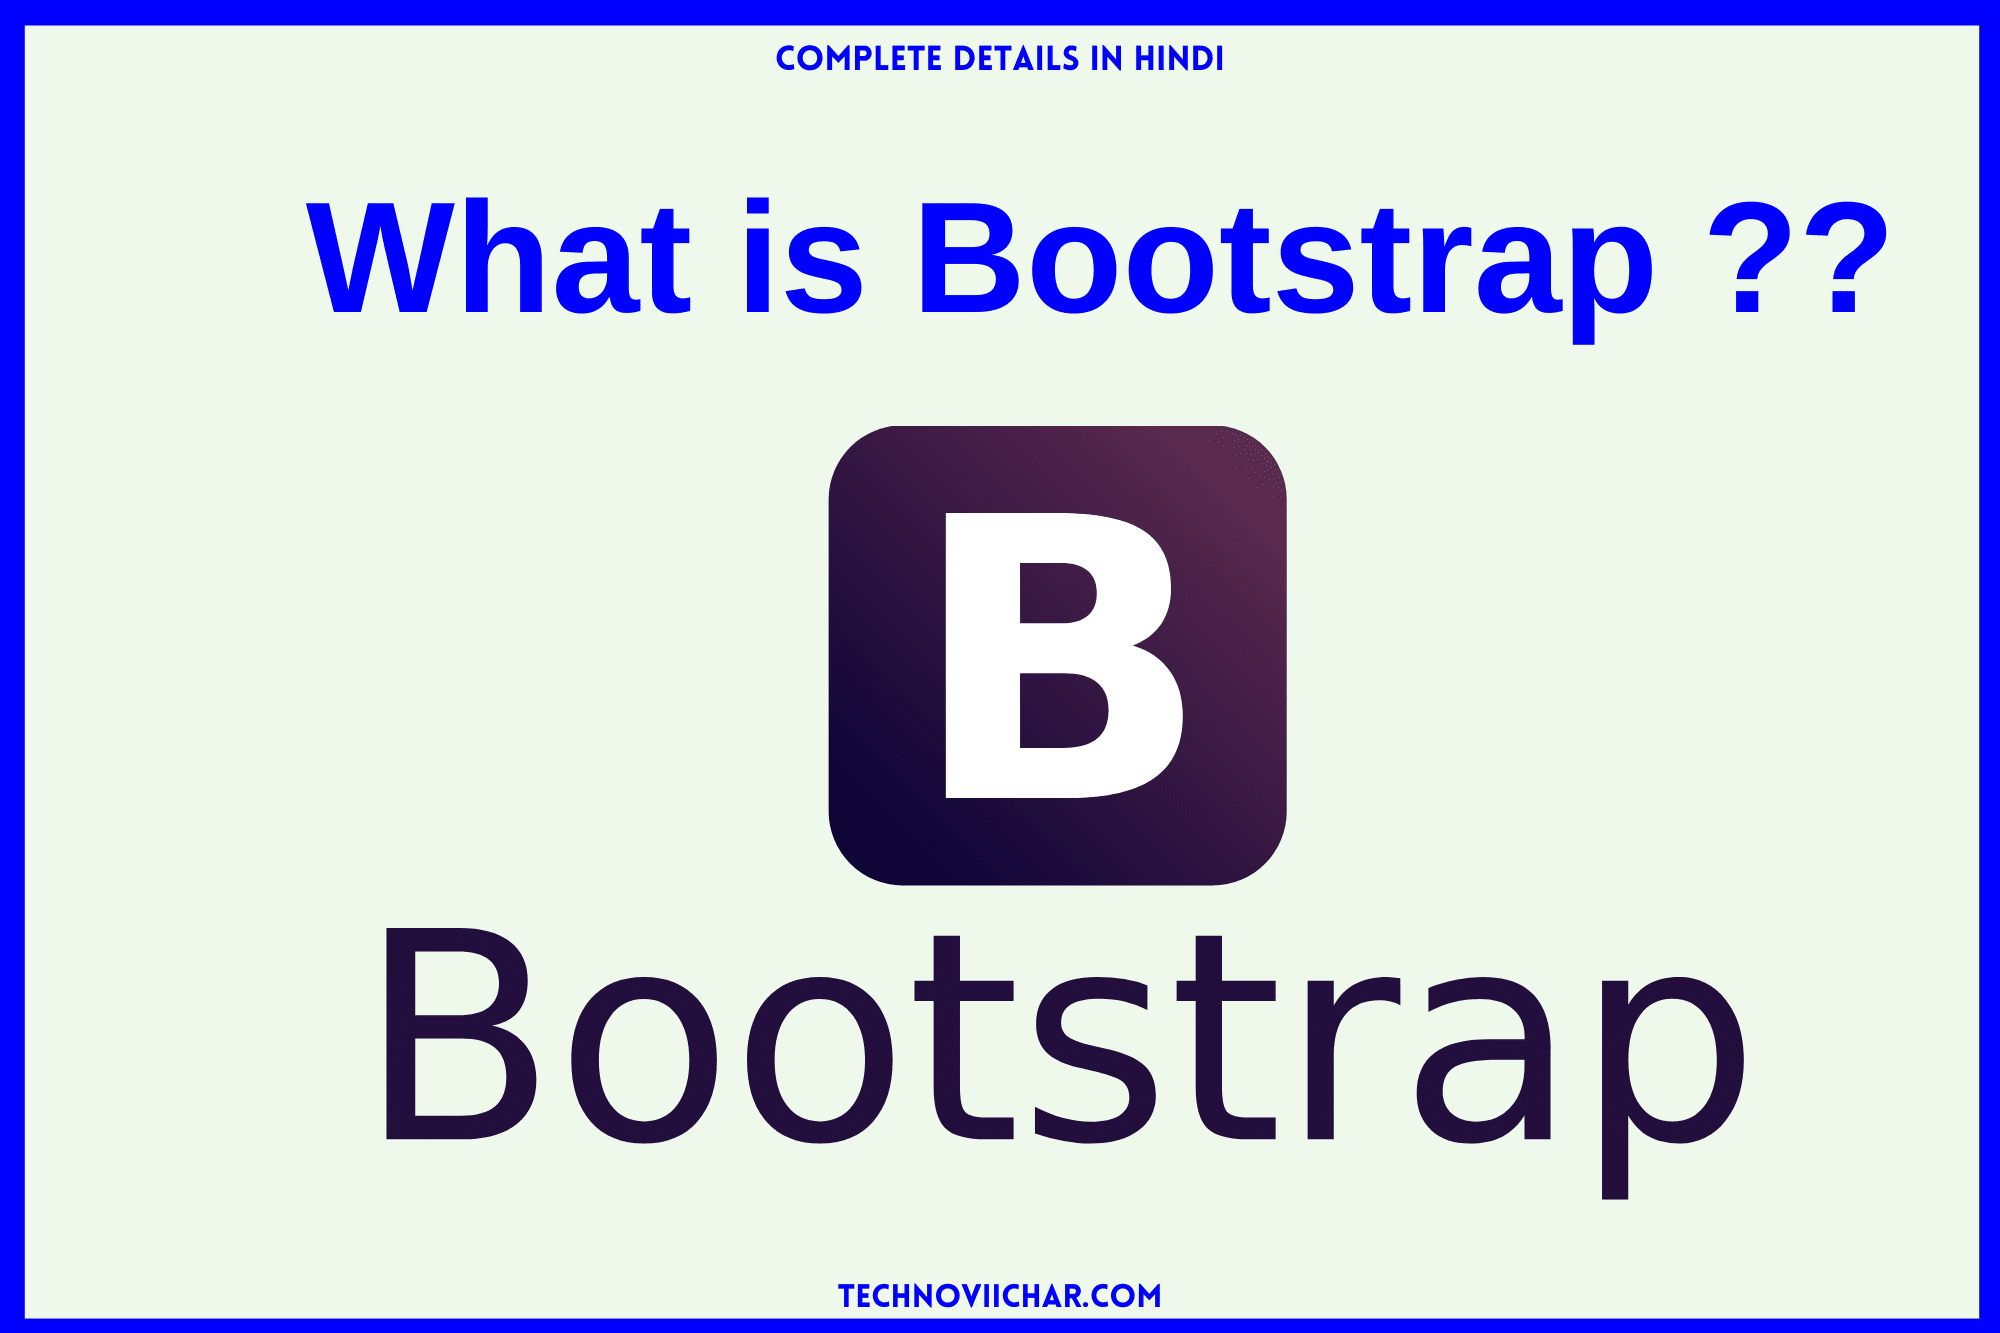 Details_About_Bootstrap_in_Hindi